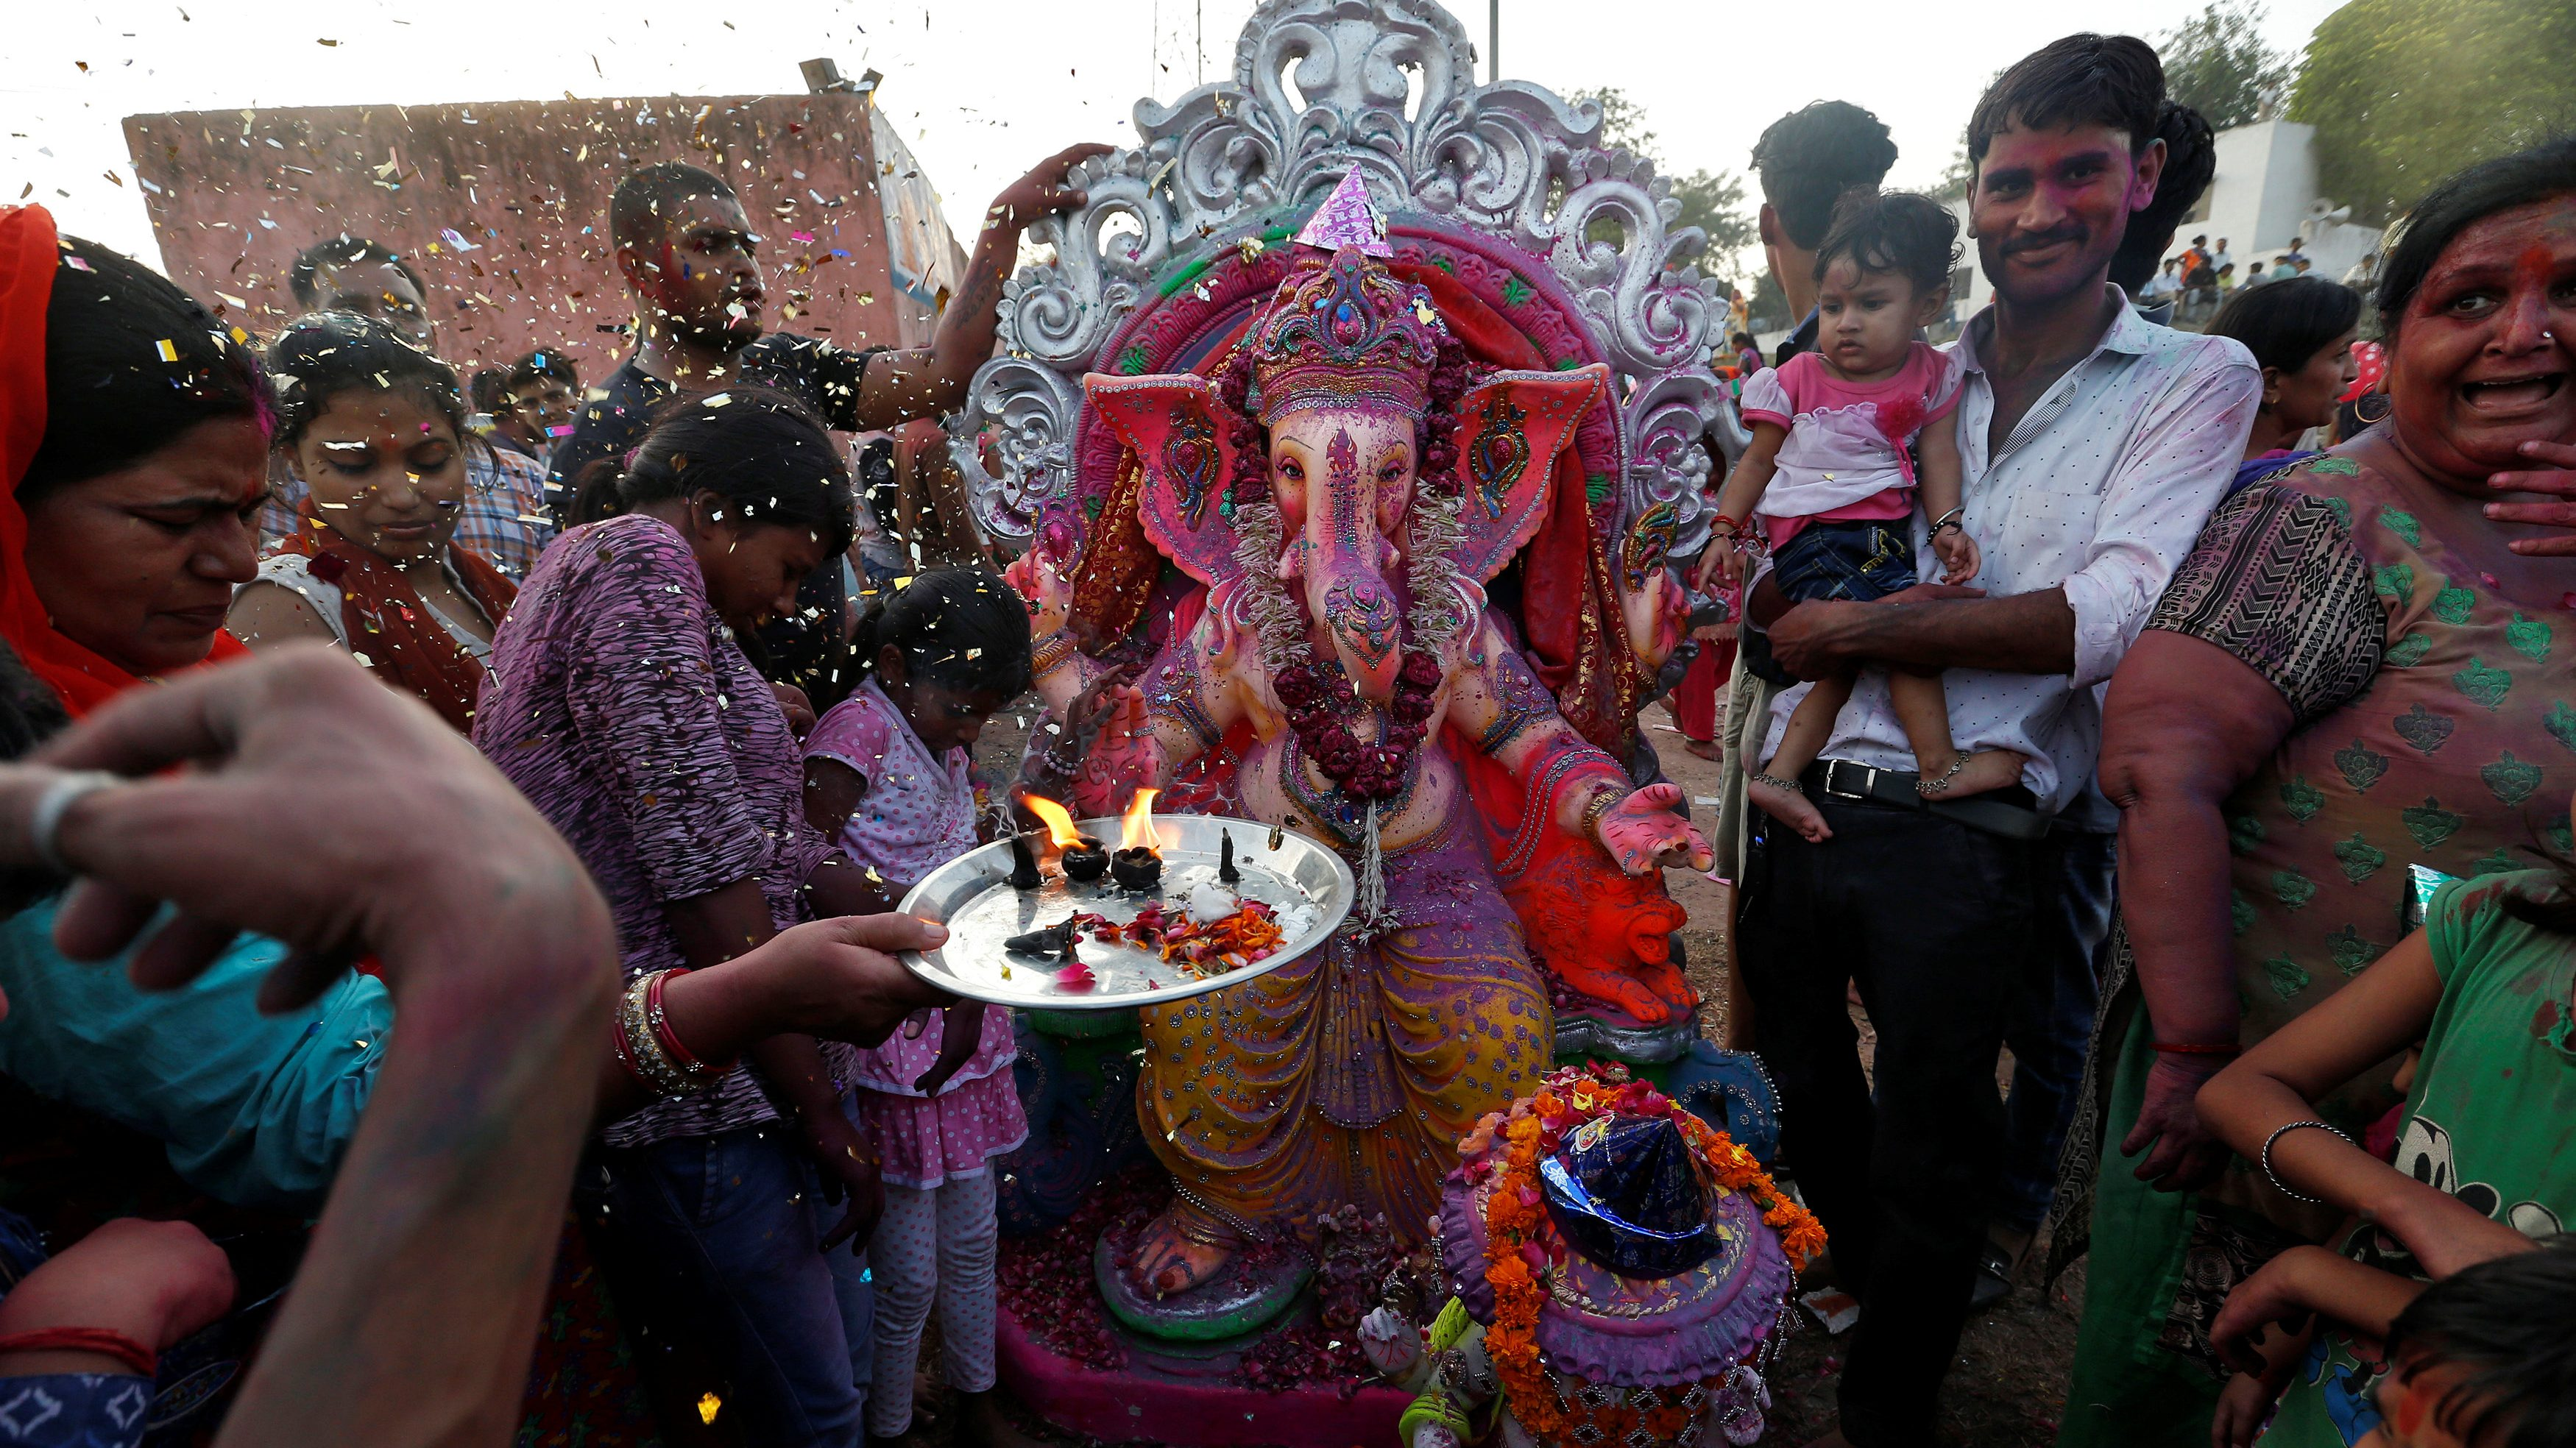 Devotees offer prayers to an idol of the Hindu god Ganesh, the deity of prosperity, as they make their way to the Yamuna river to immerse the idol on the last day of the ten-day-long Ganesh Chaturthi festival in Delhi, India, September 15, 2016. REUTERS/Cathal McNaughton - D1BEUBLMVOAC